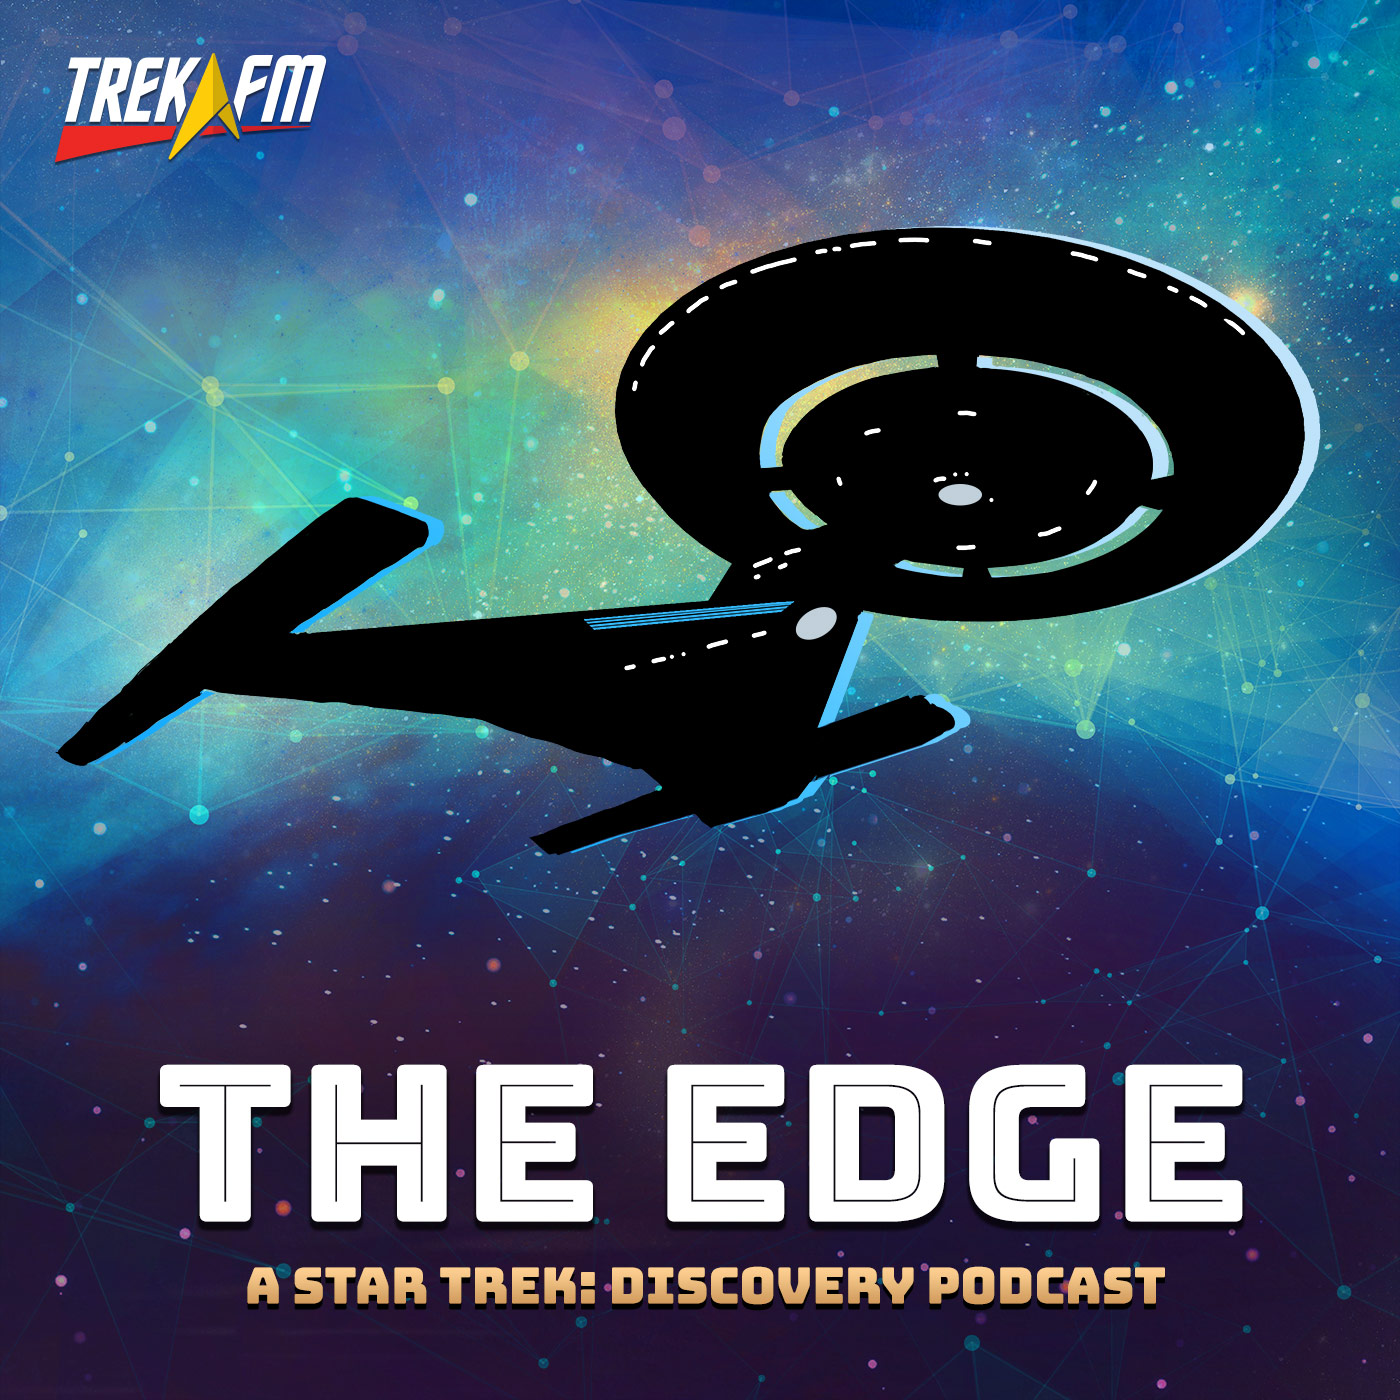 The Edge A Star Trek Discovery Podcast By Trekfm On Apple Podcasts